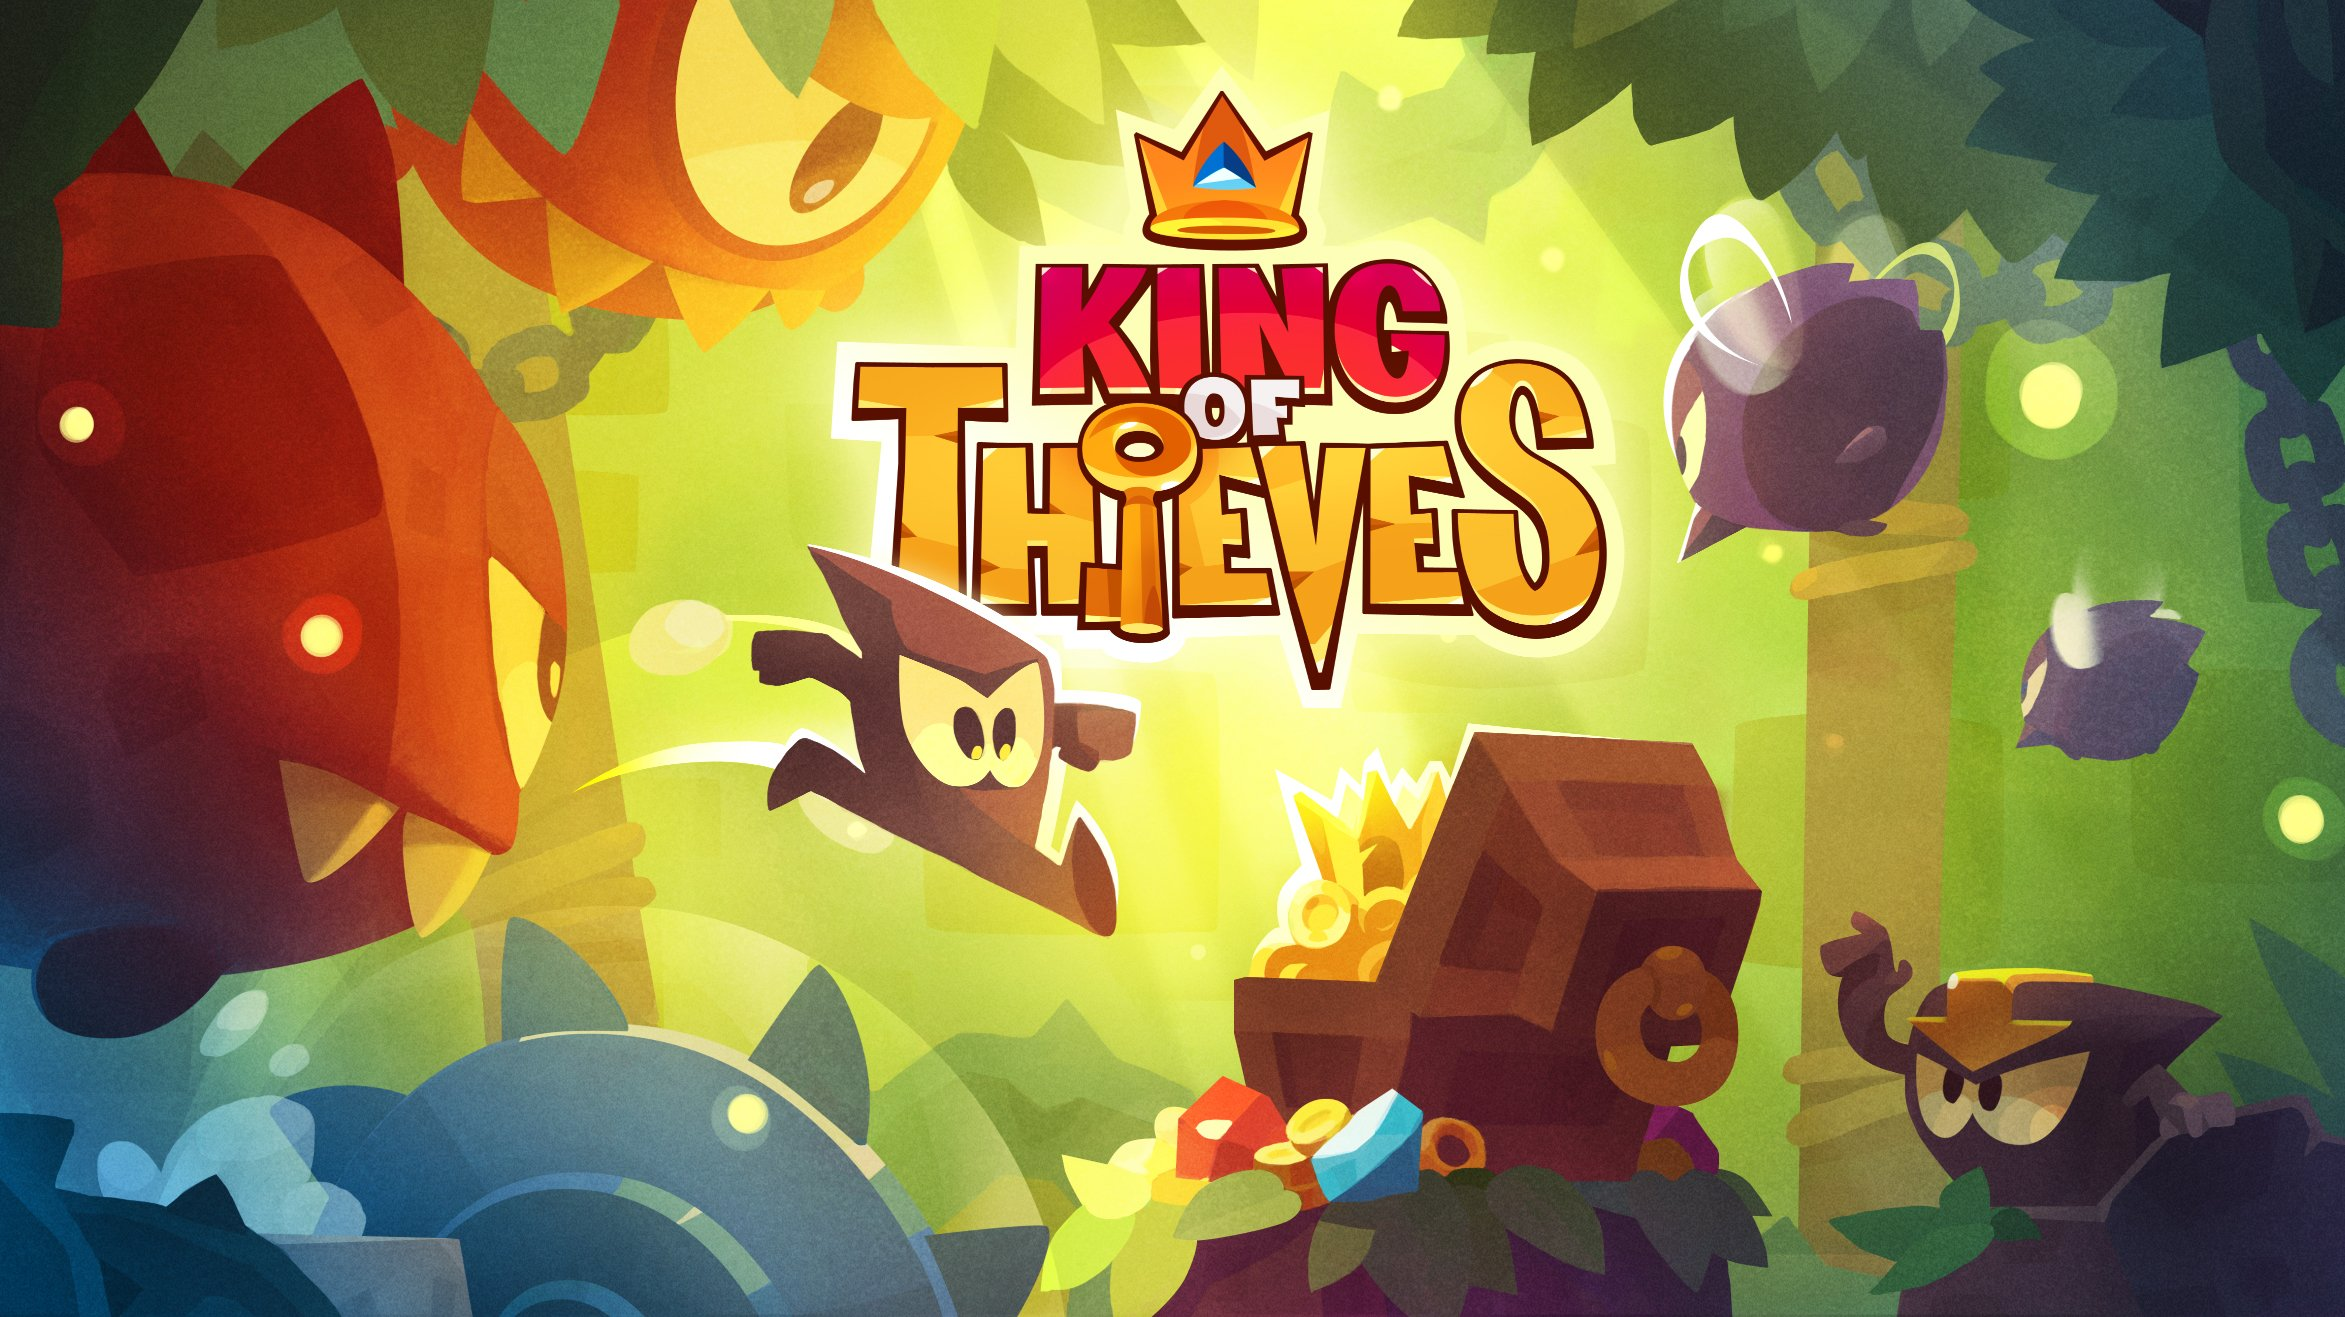 Cut the Rope creator ZeptoLab unveils its brand new game, King of Thieves